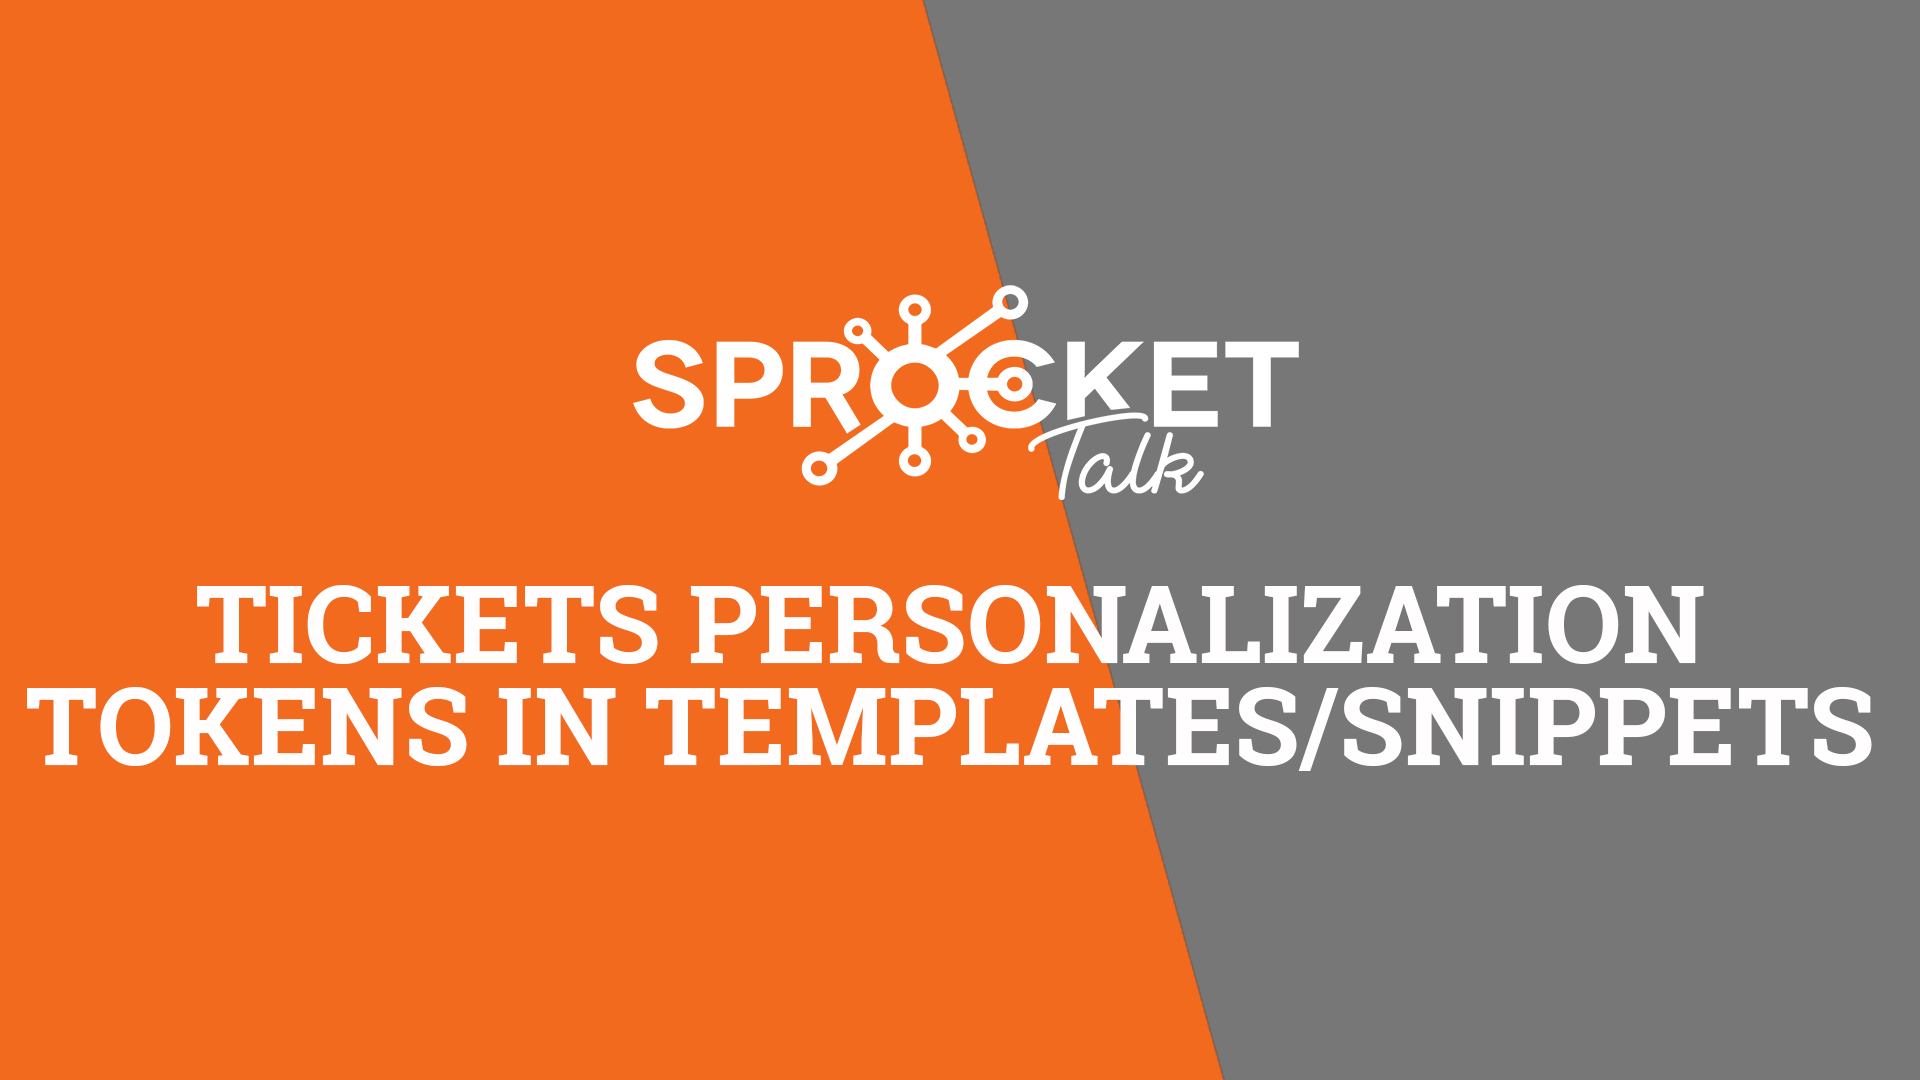 Tickets Personalization Tokens in Templates and Snippets